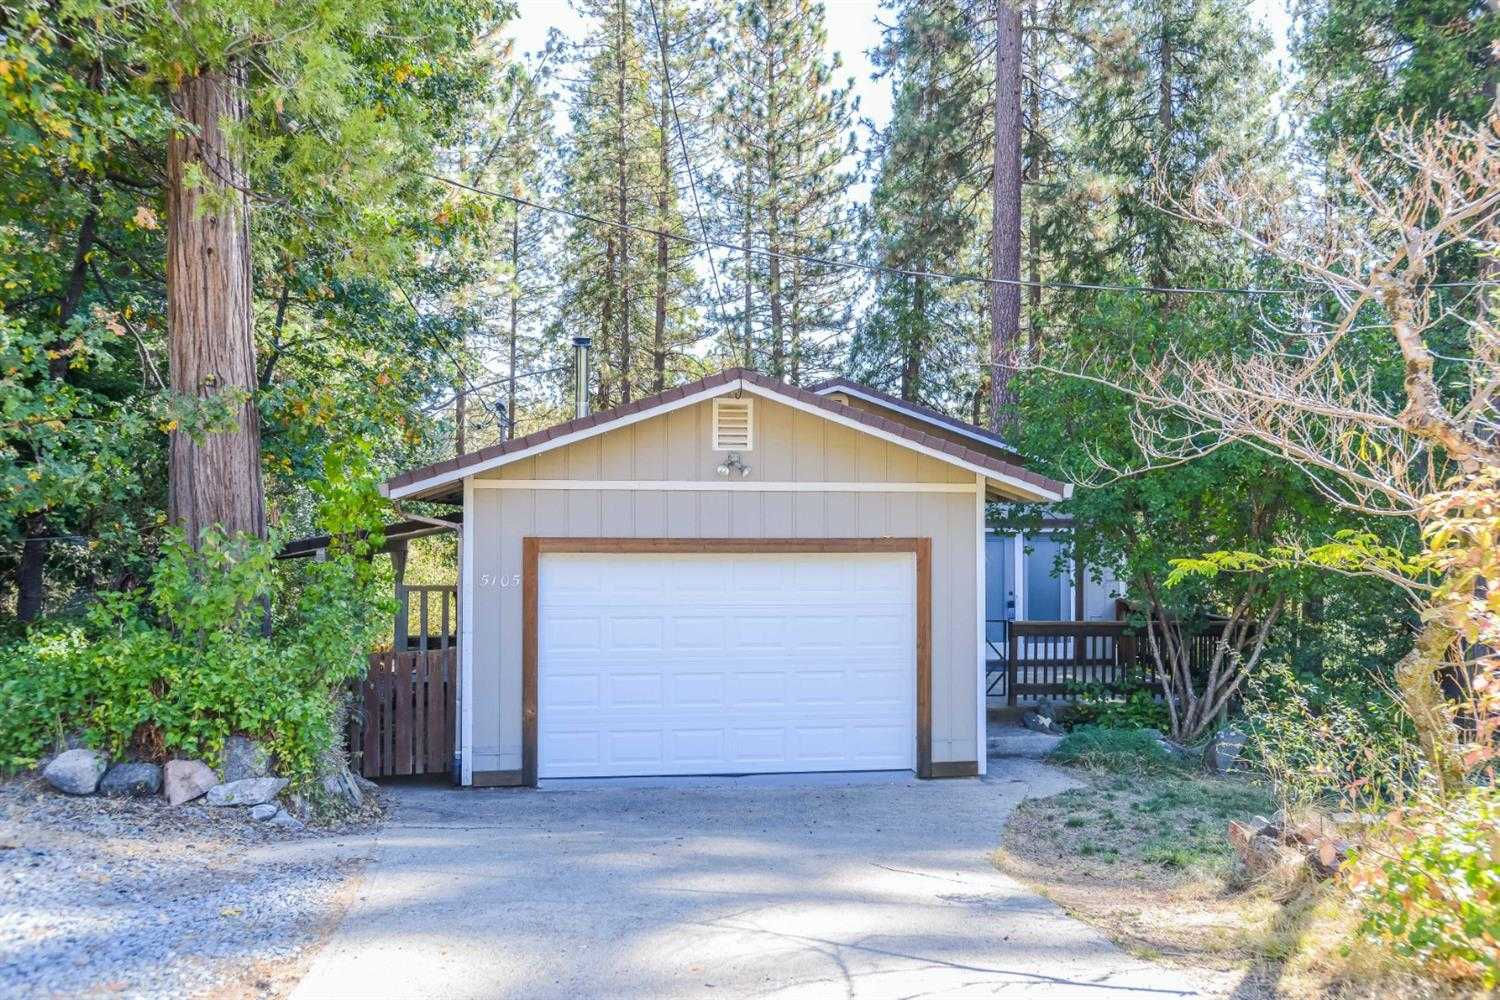 $359,900 - 4Br/3Ba -  for Sale in Sly Park Hills 01, Pollock Pines